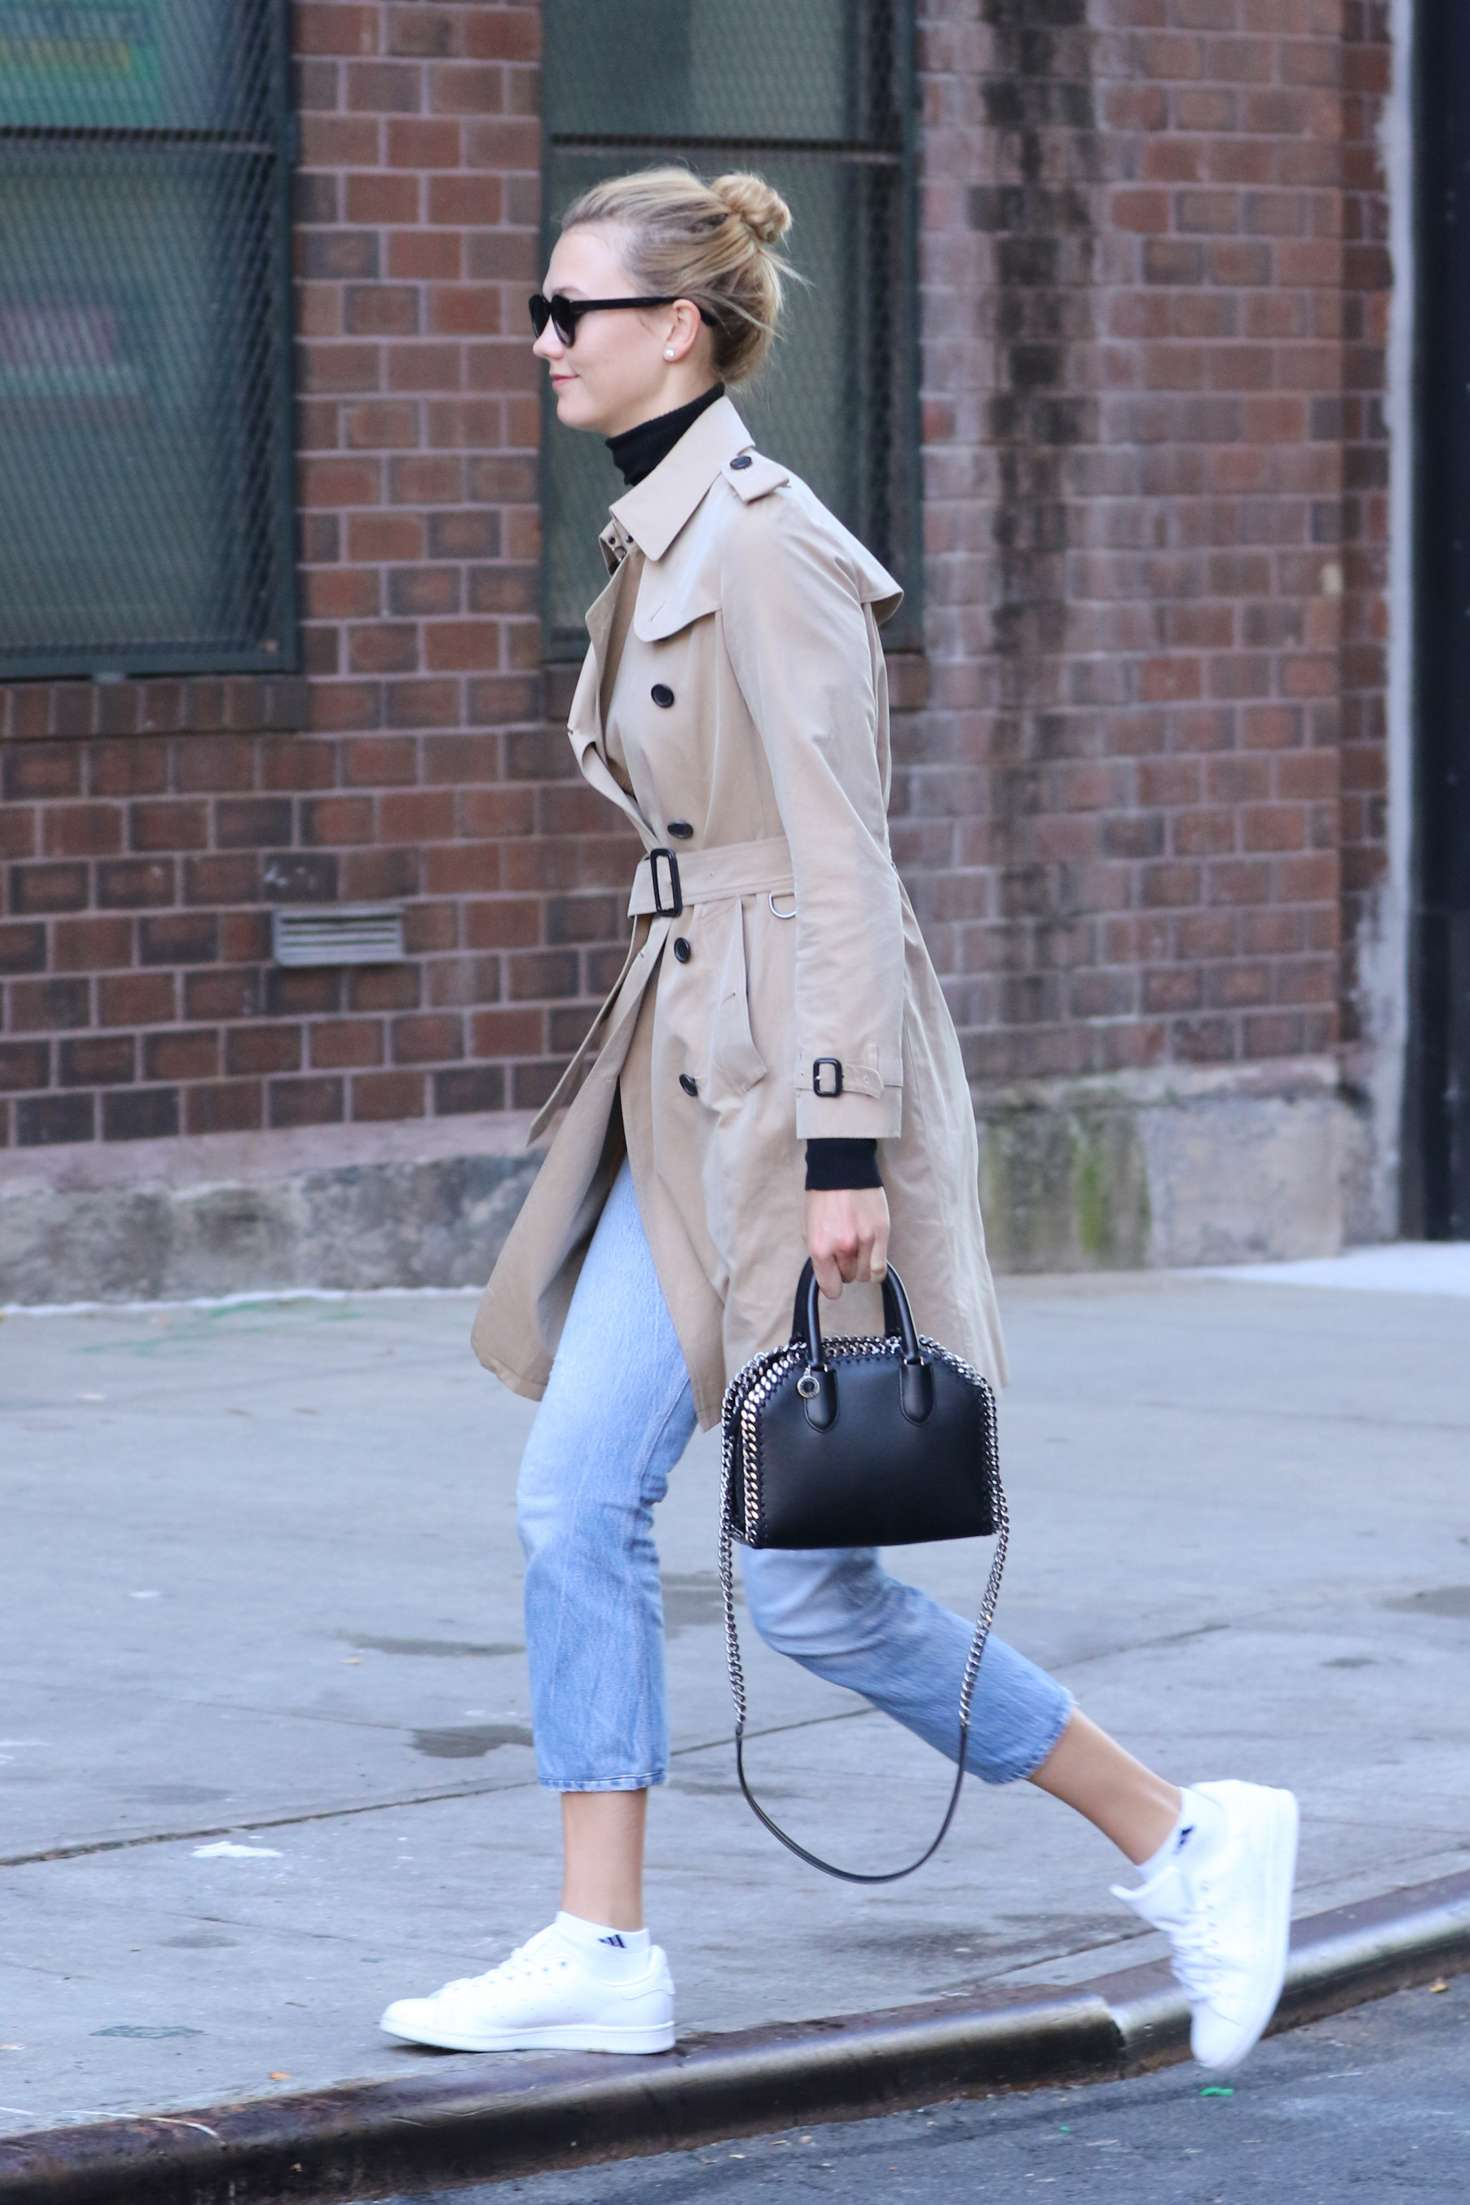 Karlie Kloss 2016 : Karlie Kloss in Jeans and Coat -13